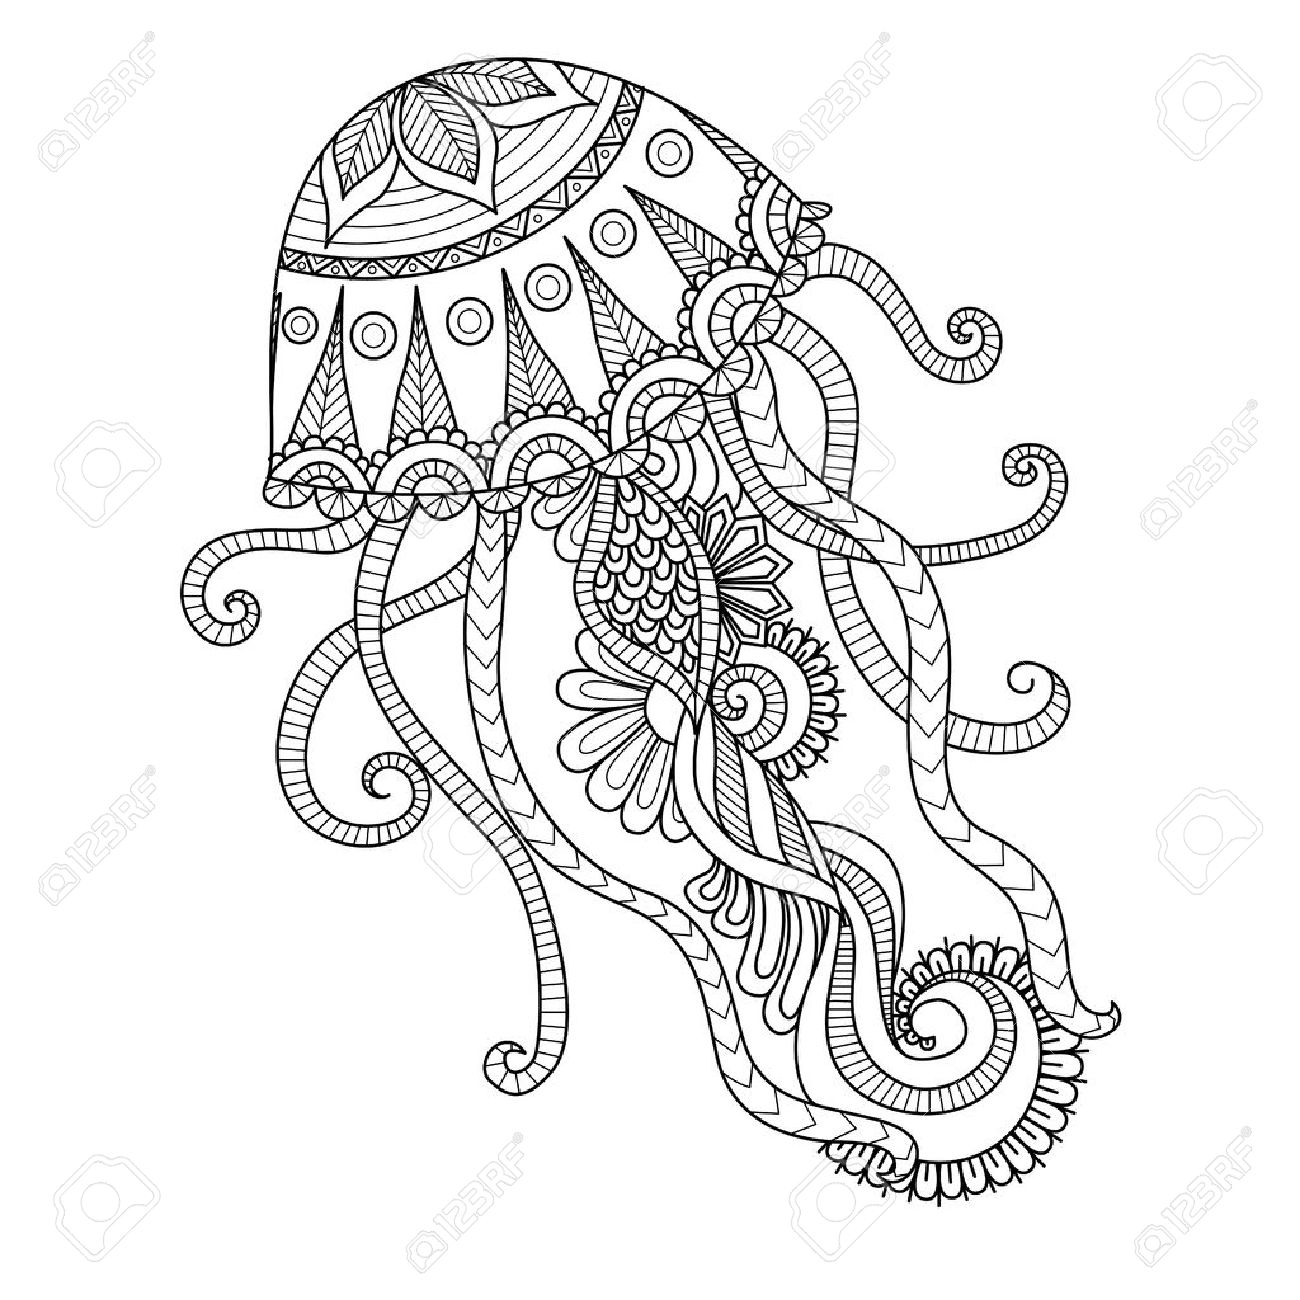 hand drawn jellyfish style for coloring paget shirt design effect tattoo and so